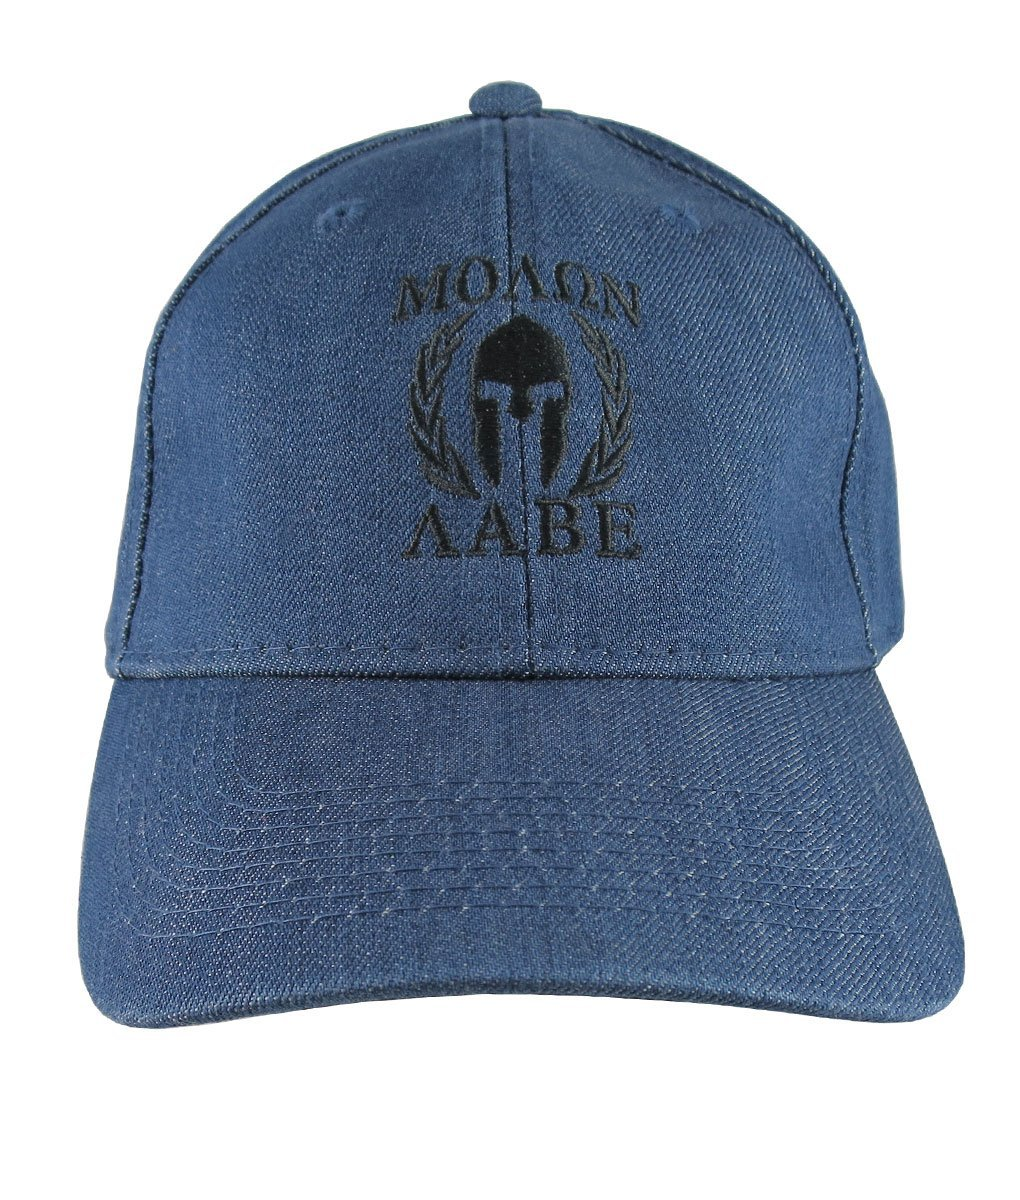 5fc85f58 Molon Labe Spartan Warrior Mask in Laurels Black Embroidery on an  Adjustable Blue Denim Structured Baseball Cap: Amazon.ca: Handmade